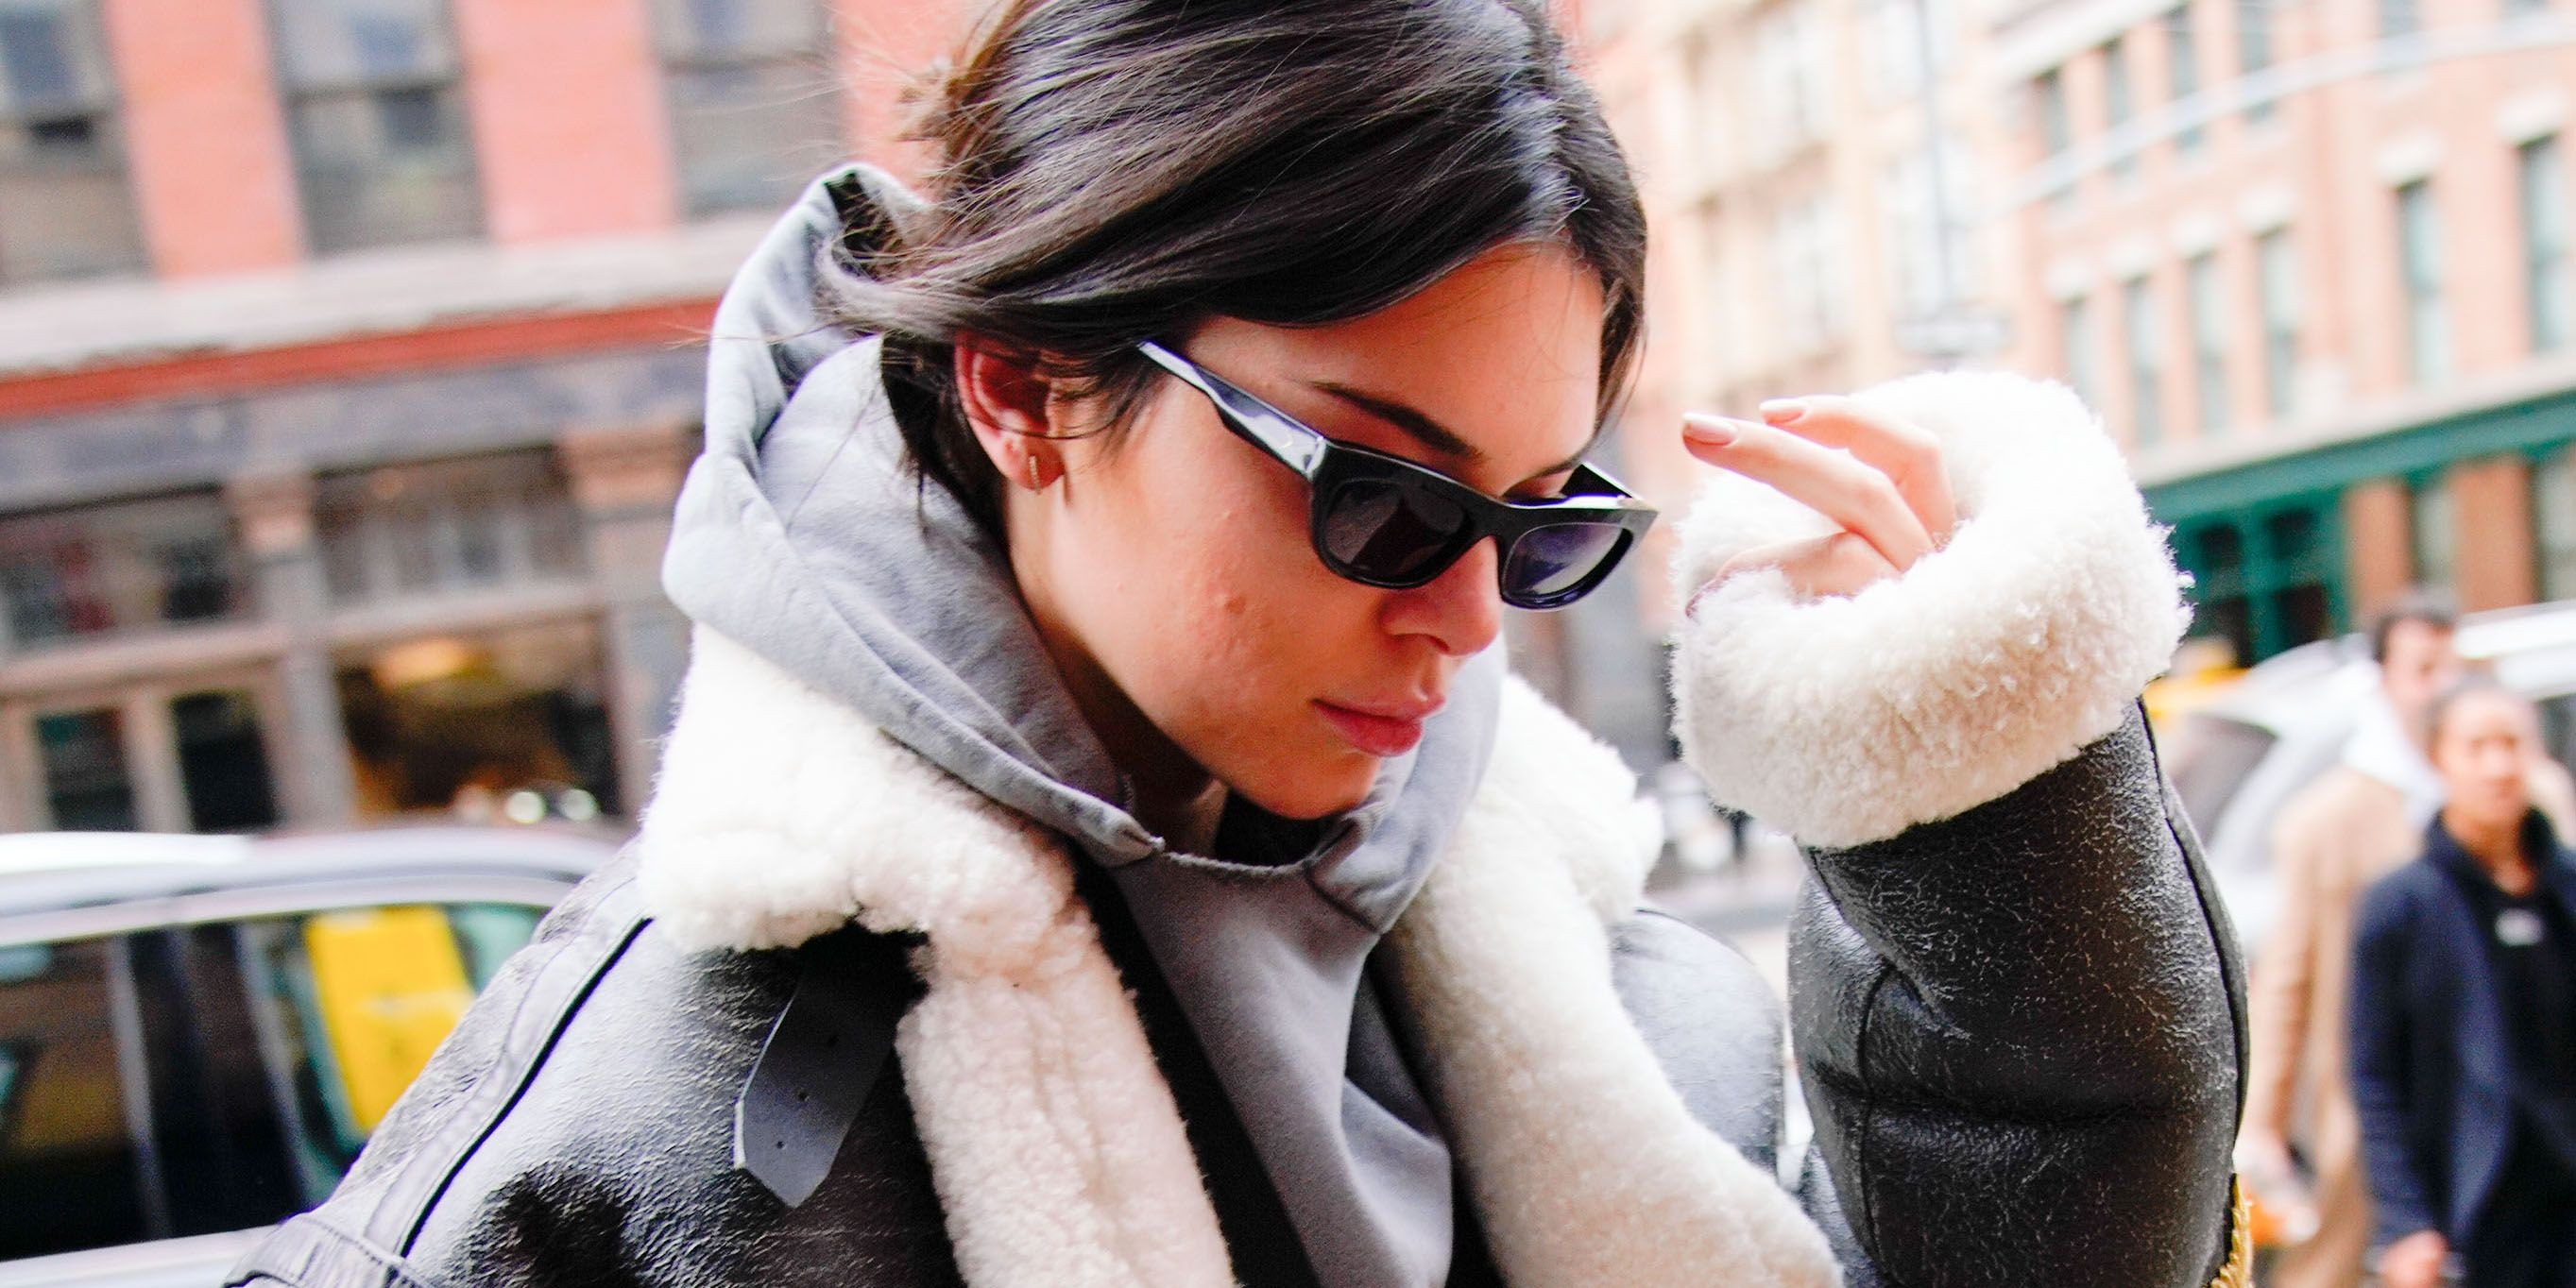 d140b6ca75a1 Kendall Jenner s Anxiety Might Stop Her From Walking The NYFW Shows